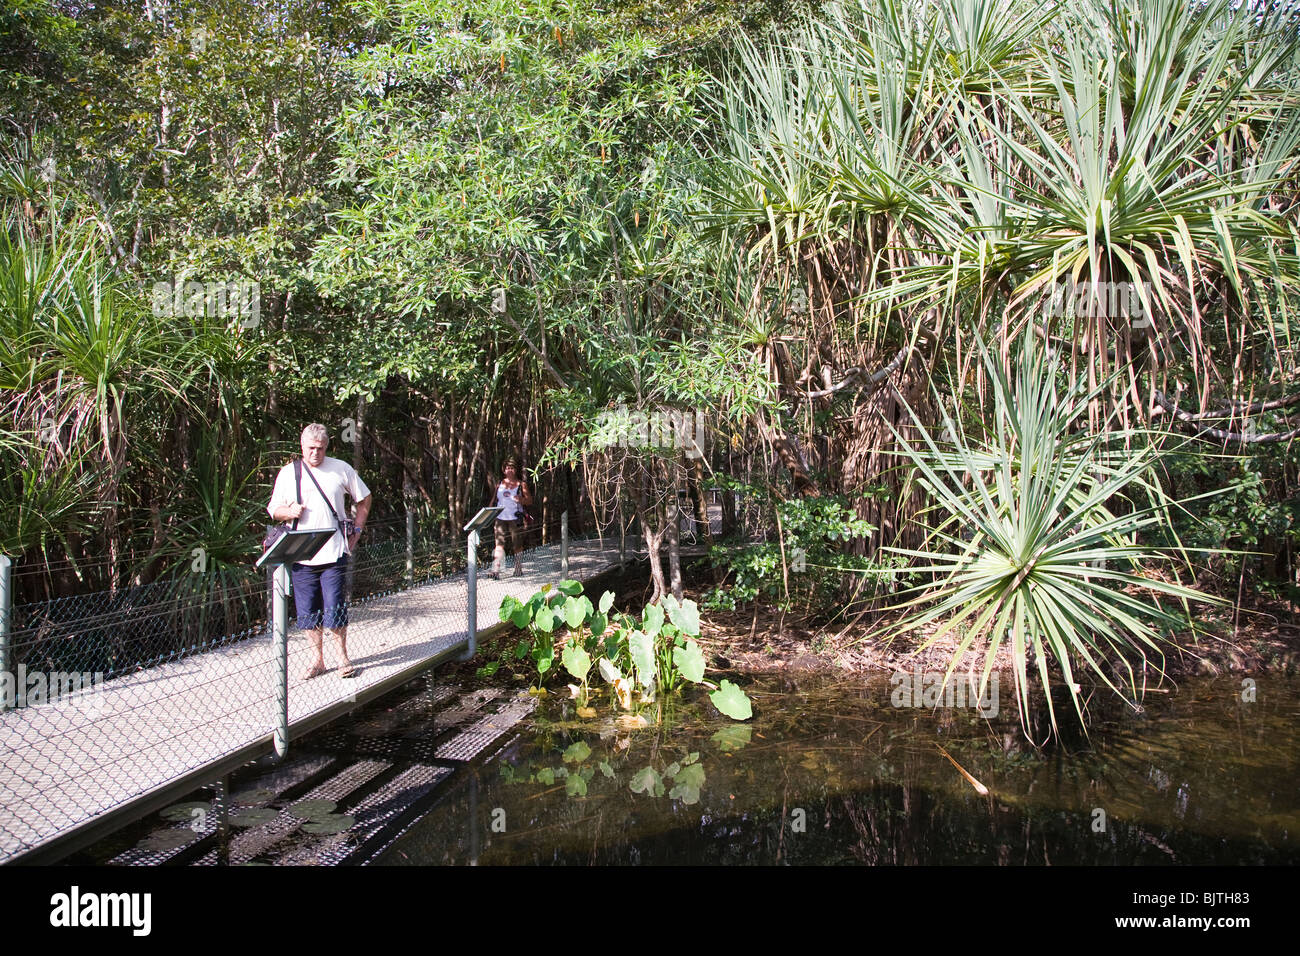 Territory Wildlife Park just south of Darwin, is a sprawling open air nature park set in natural bushland - Stock Image